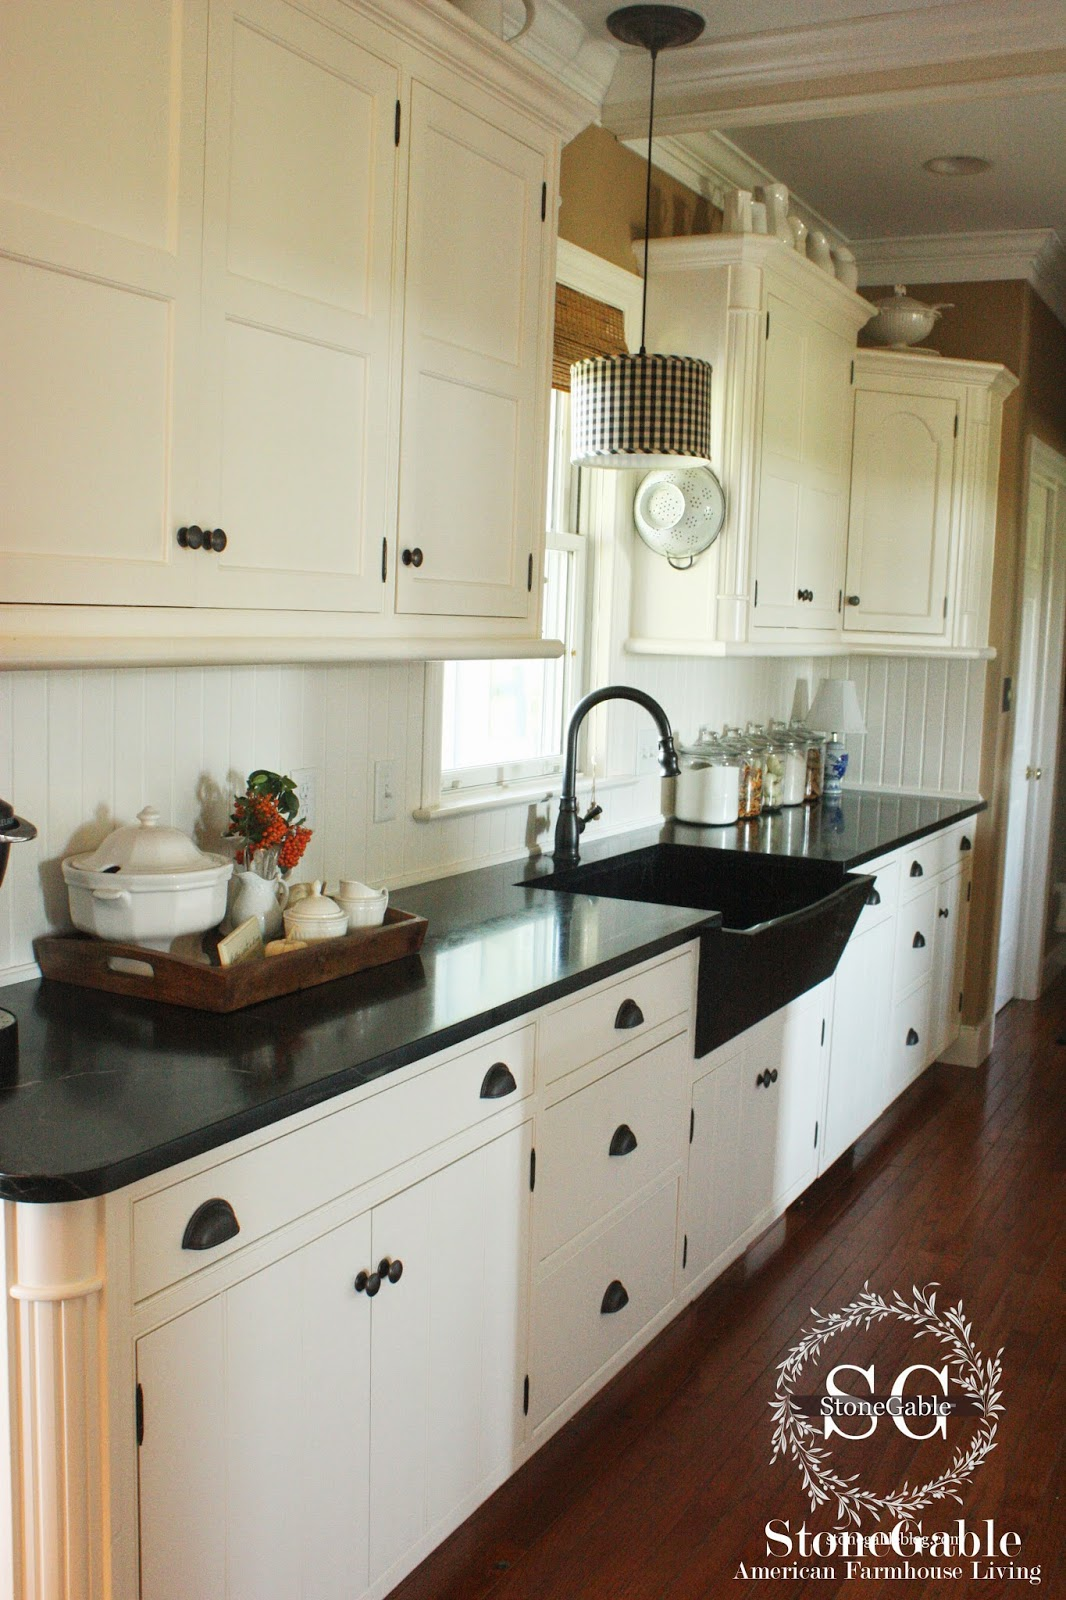 10 elements of farmhouse kitchen white kitchen countertops 10 ELEMENTS OF A FARMHOUSE KITCHEN